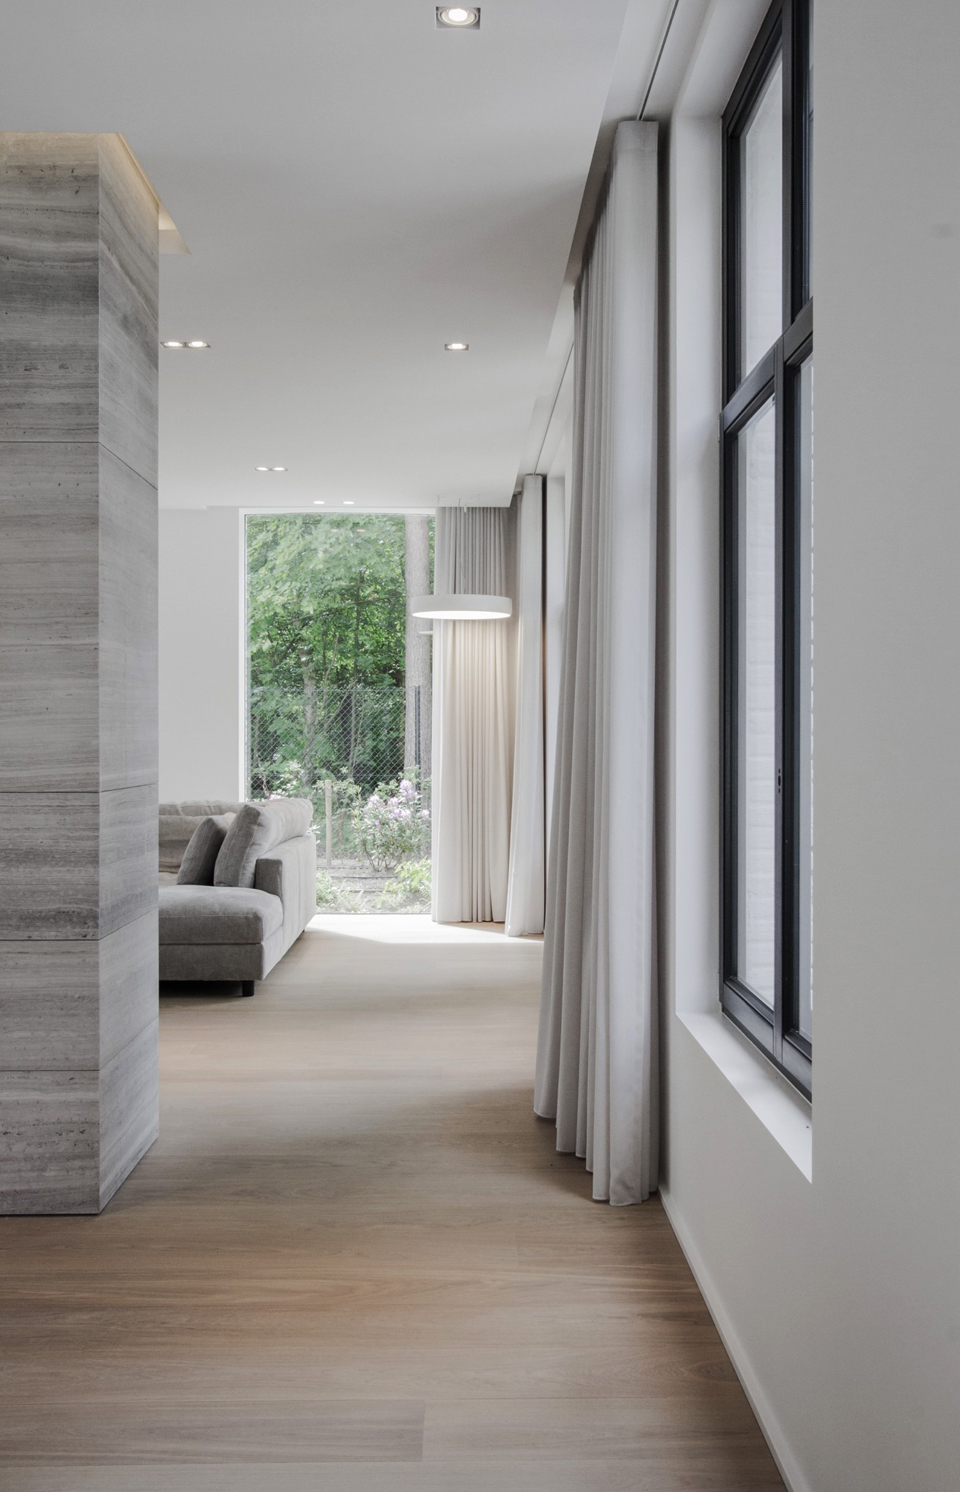 minimalist-belgian-home-by-contekst-dpages-4-1.jpg